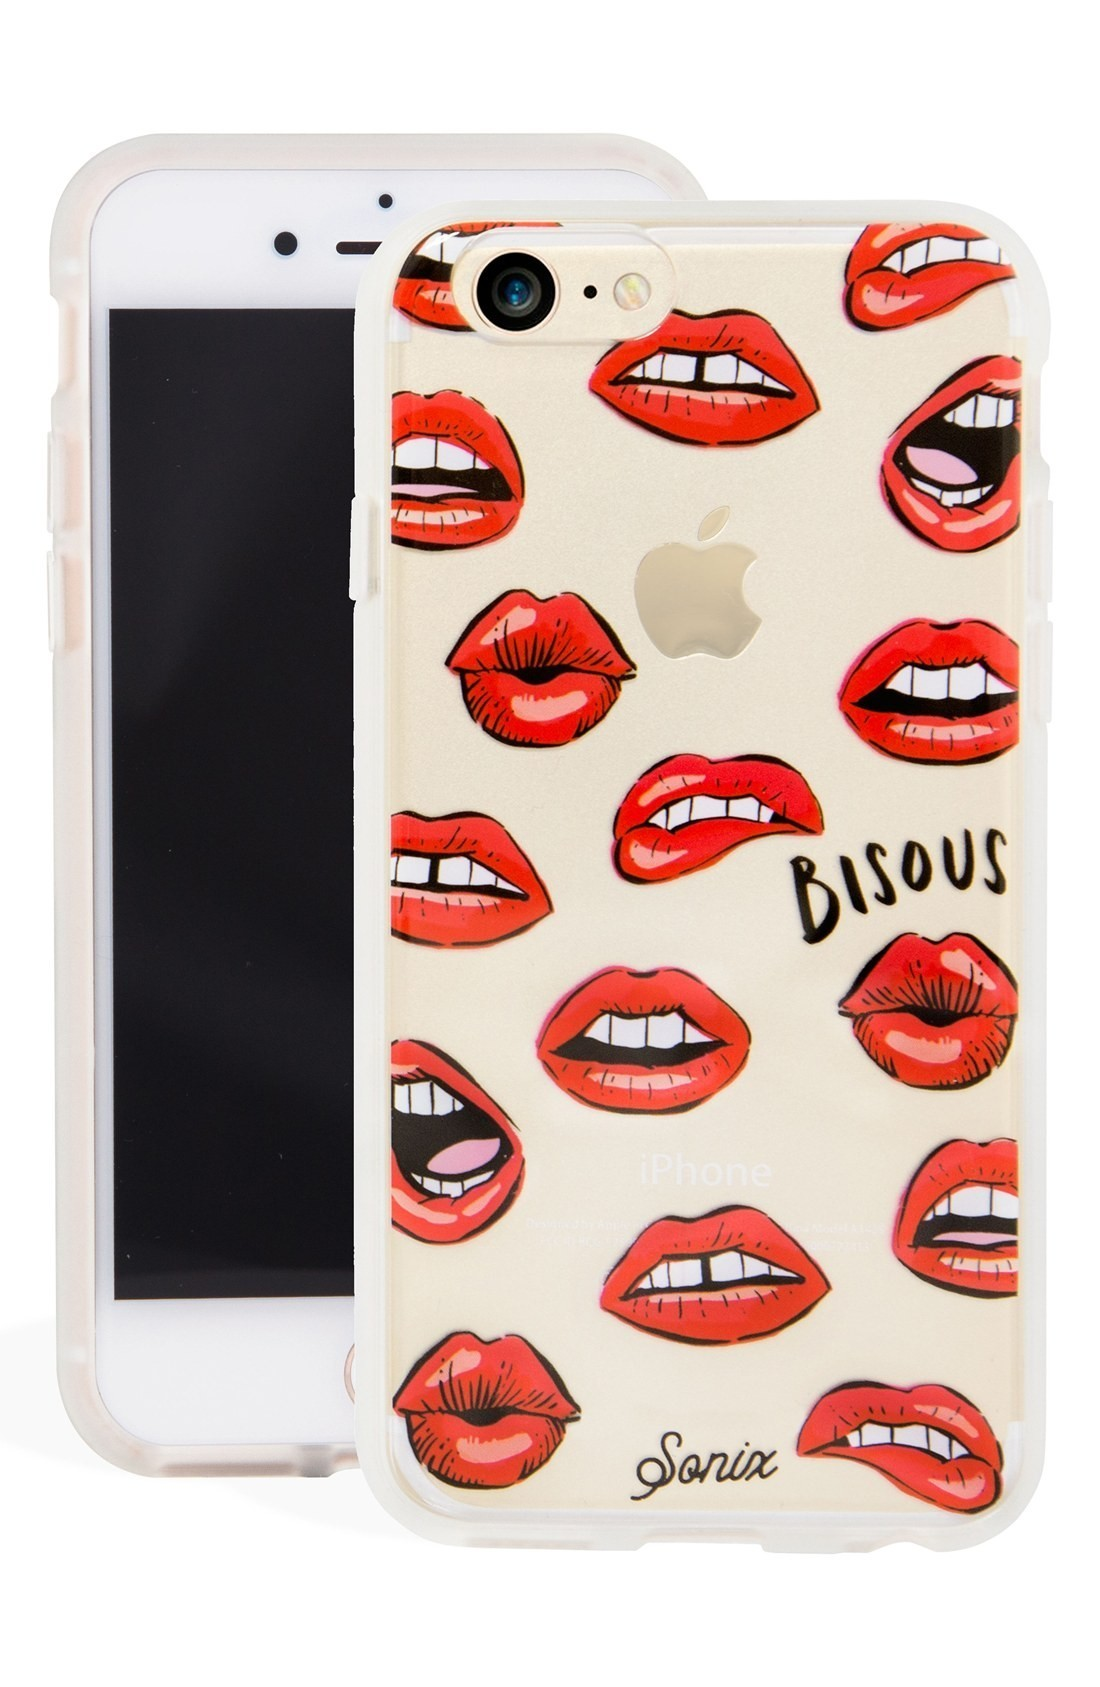 ☆Sonix Bisous iPhone 6/6s/7/8 Case☆